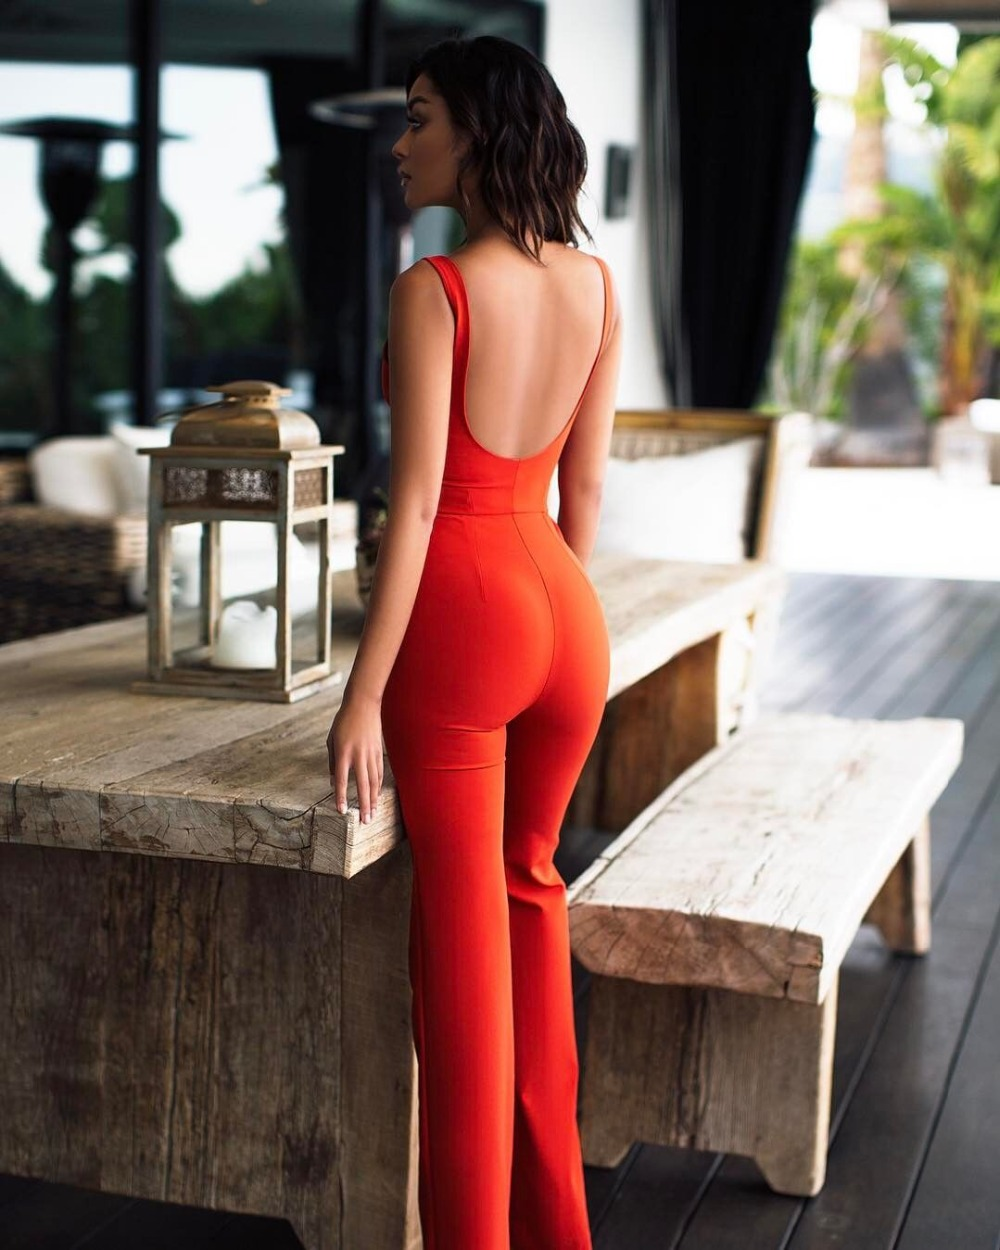 Backless Plunge Fasciatura All'ingrosso Rosso Celebrity Di Tuta 2017 Nuove Hl Sexy Tute Red Body V Estate Donne Bodycon 06qdSAST